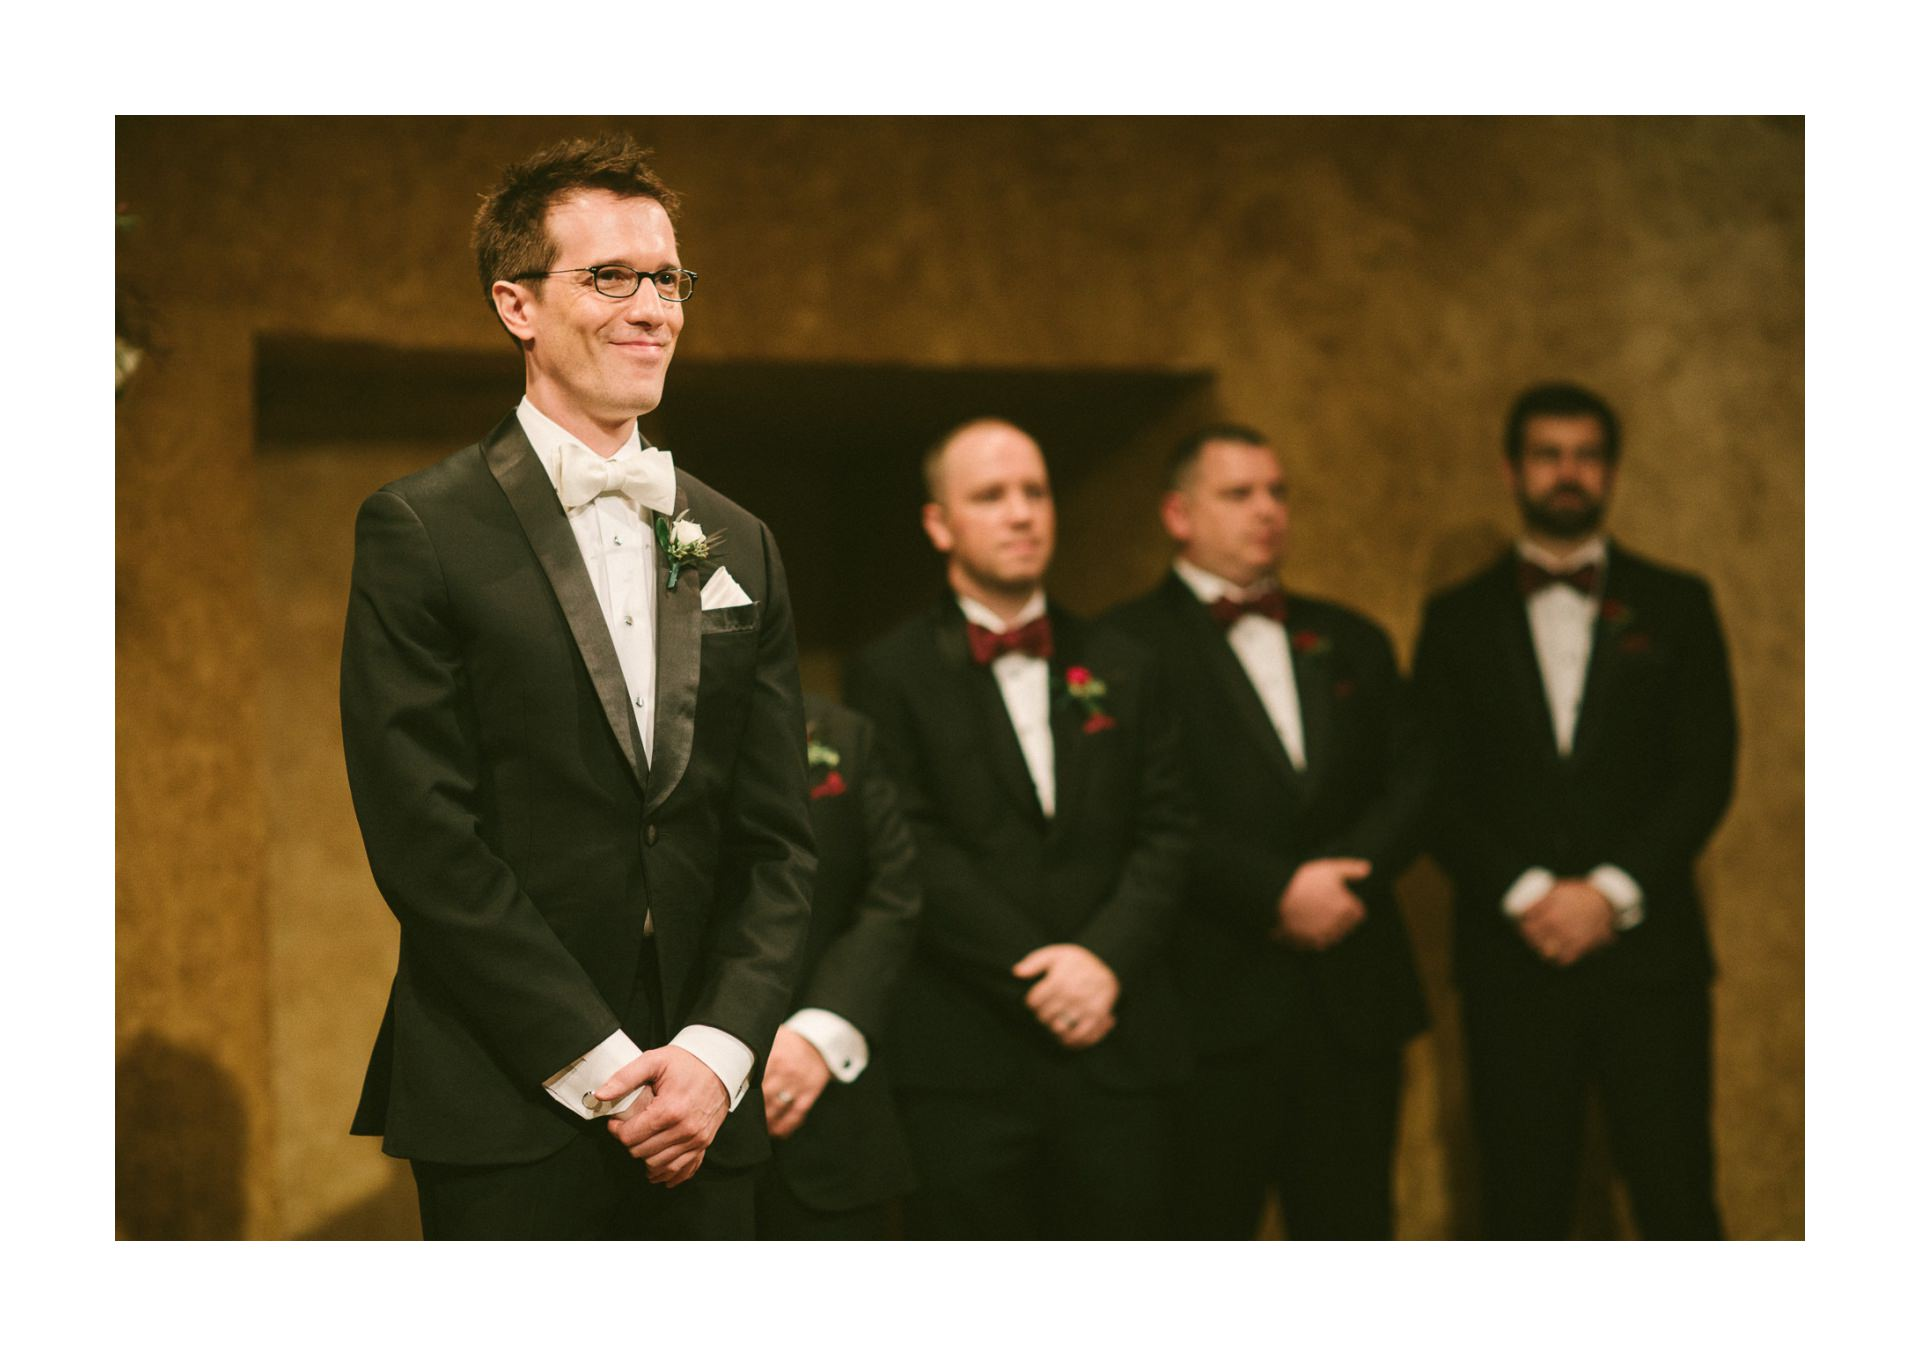 Cibreo Privato Wedding at Playhouse Square in Cleveland 1 43.jpg